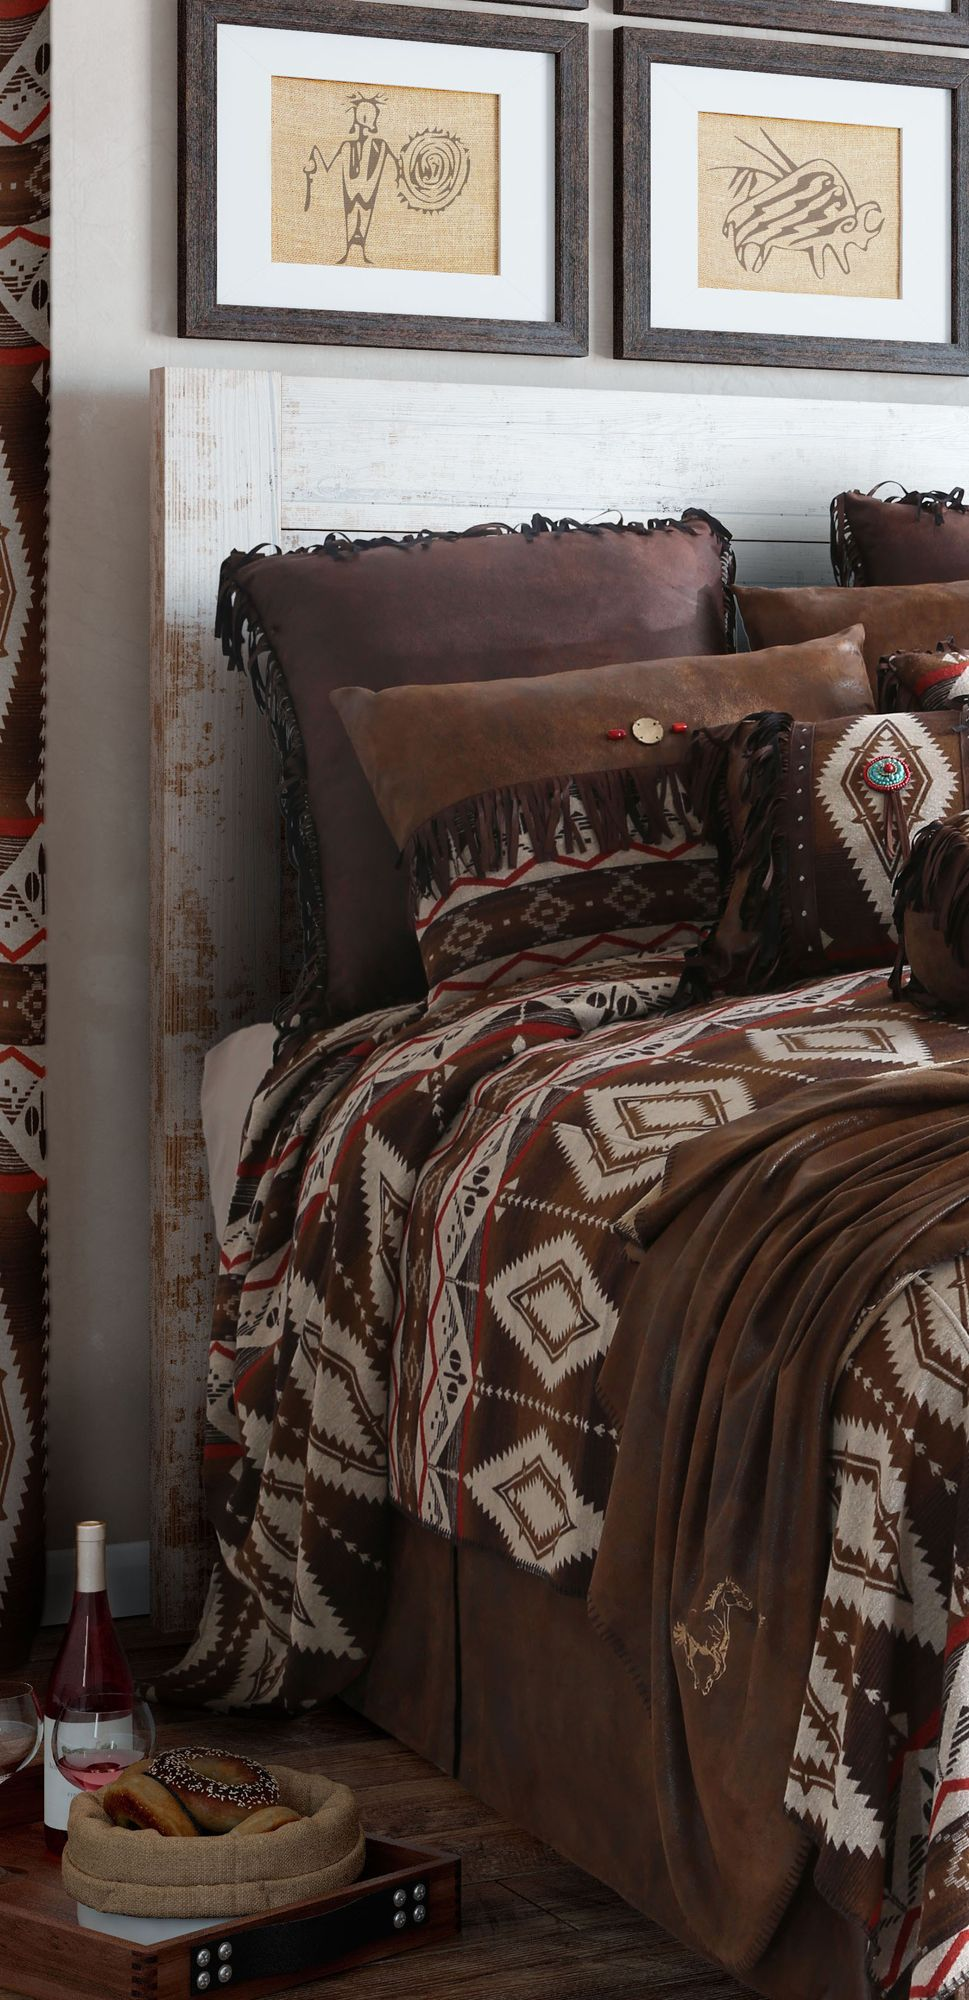 Best Rustic Bedding Sets For 2020 Rustic Bedding Rustic 400 x 300